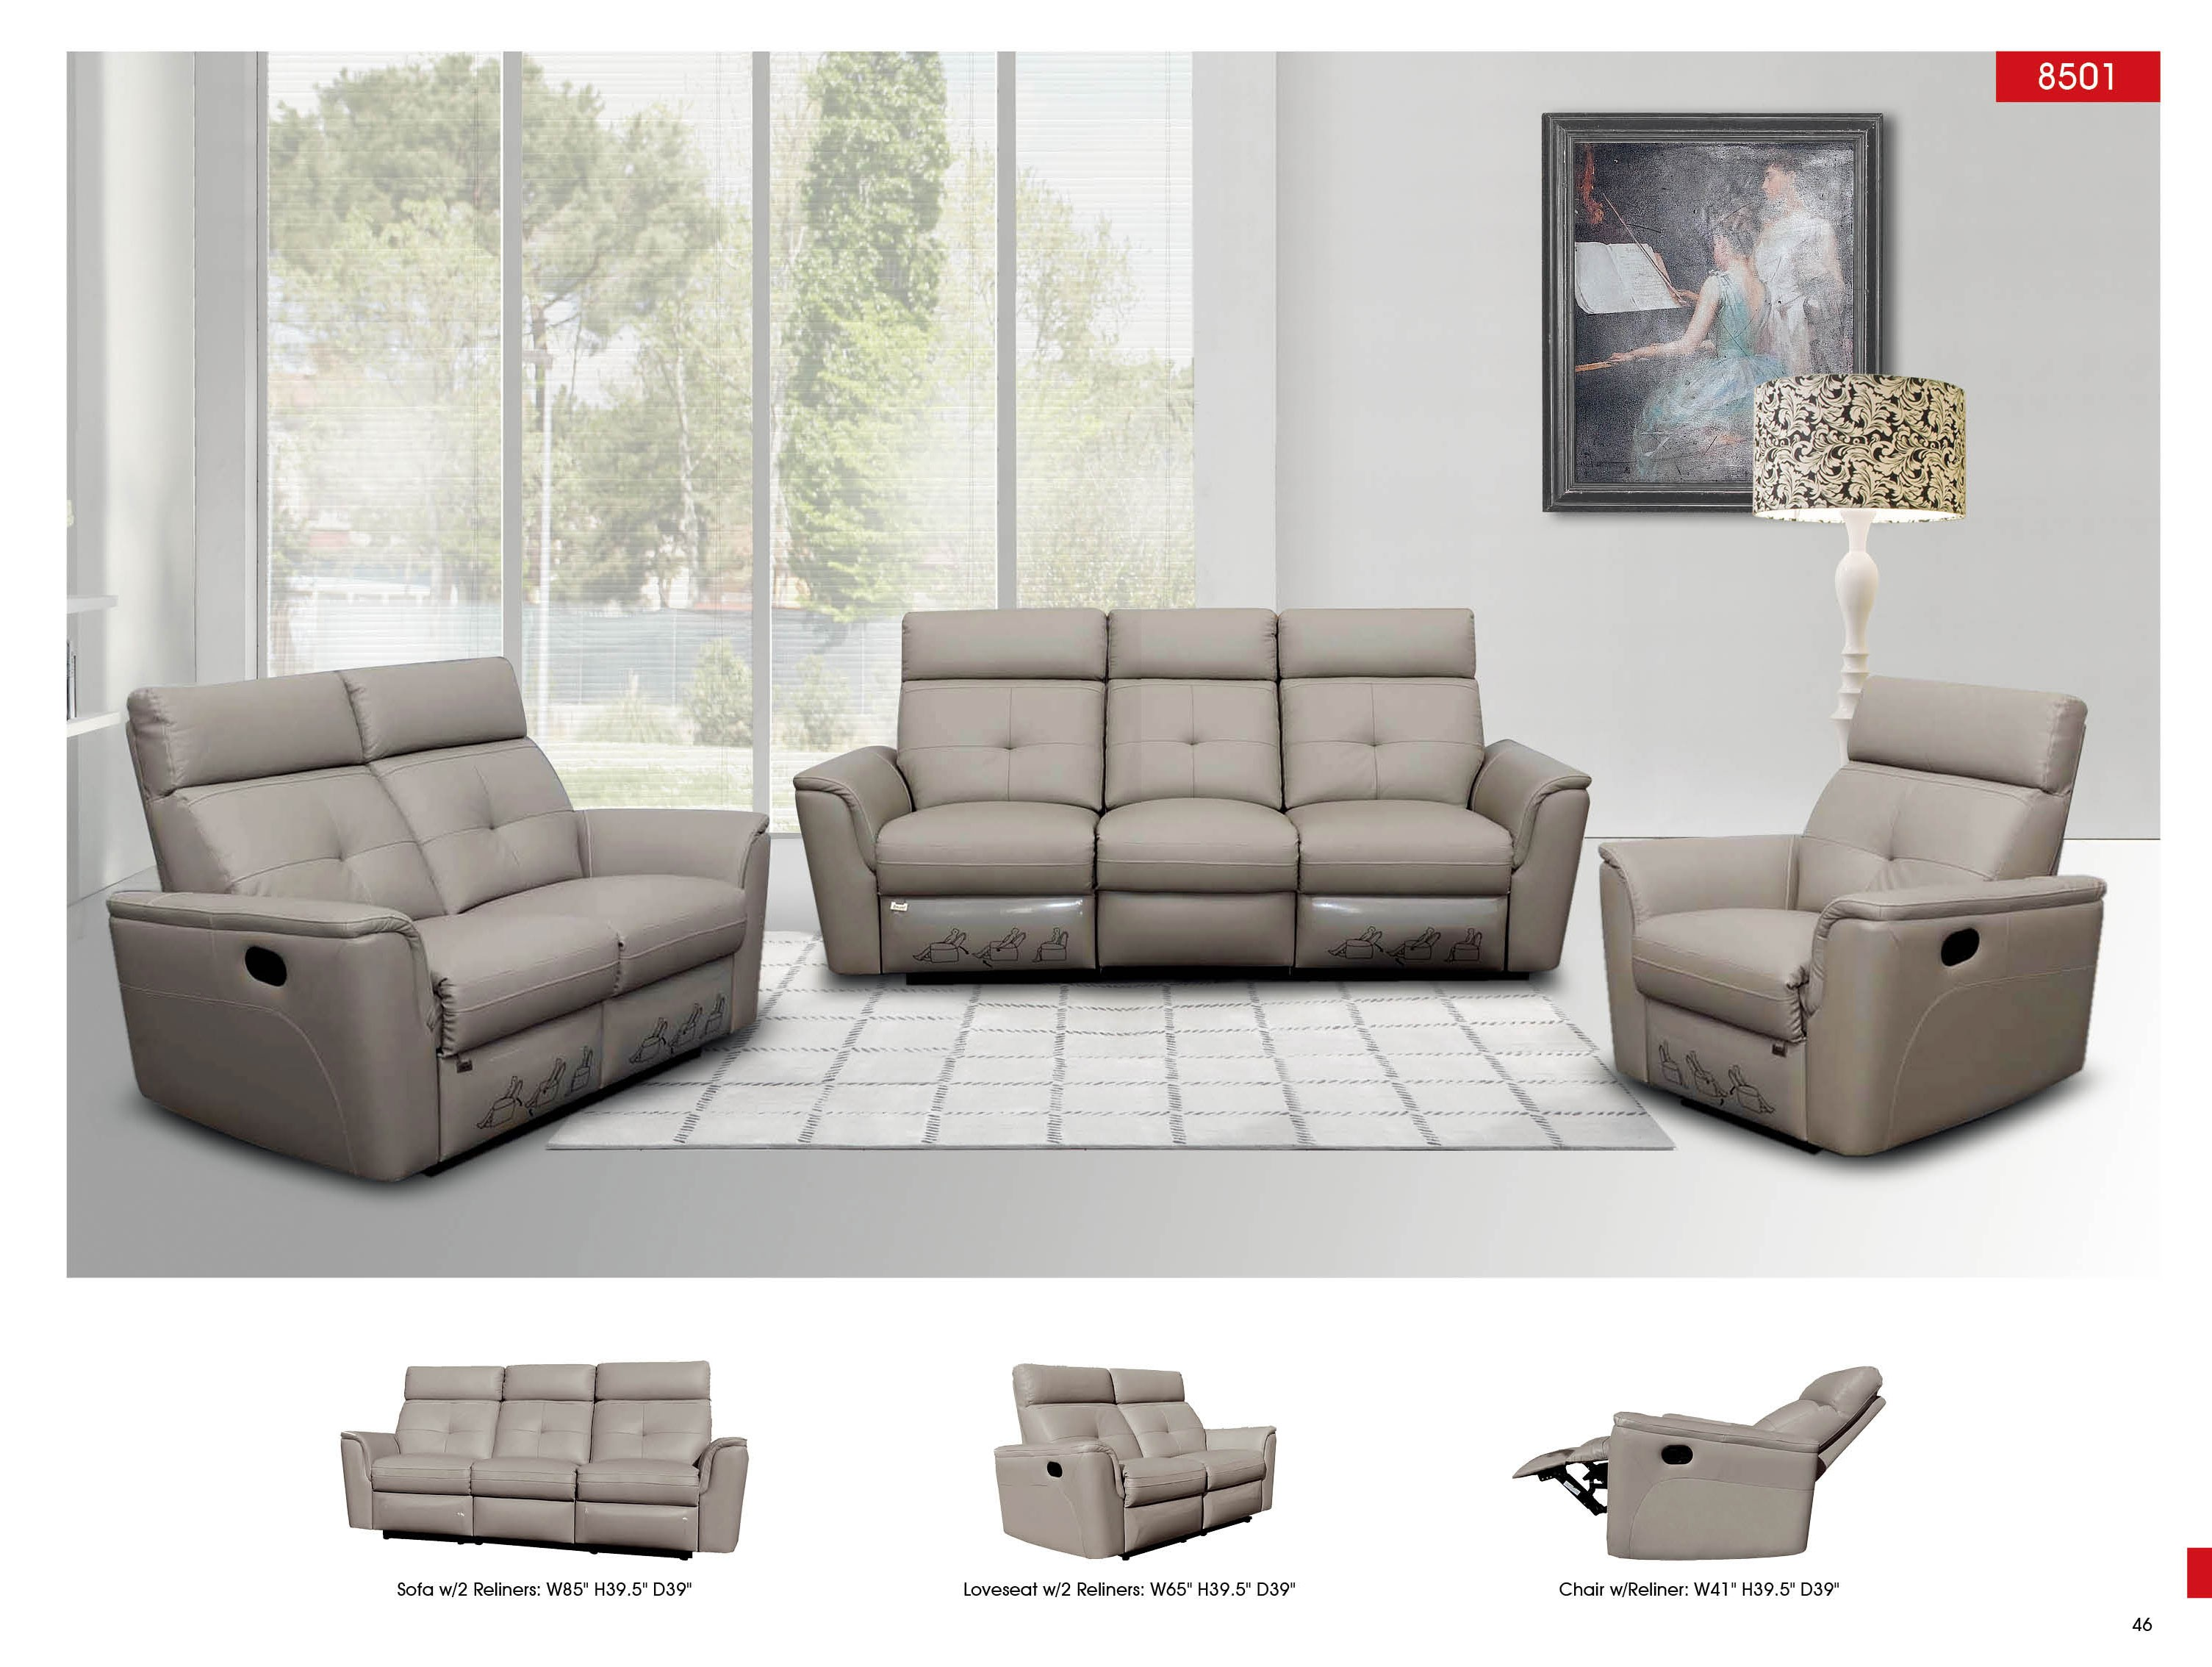 8501 contemporary contemporary reclining leather sofa nova for Living room modern furniture